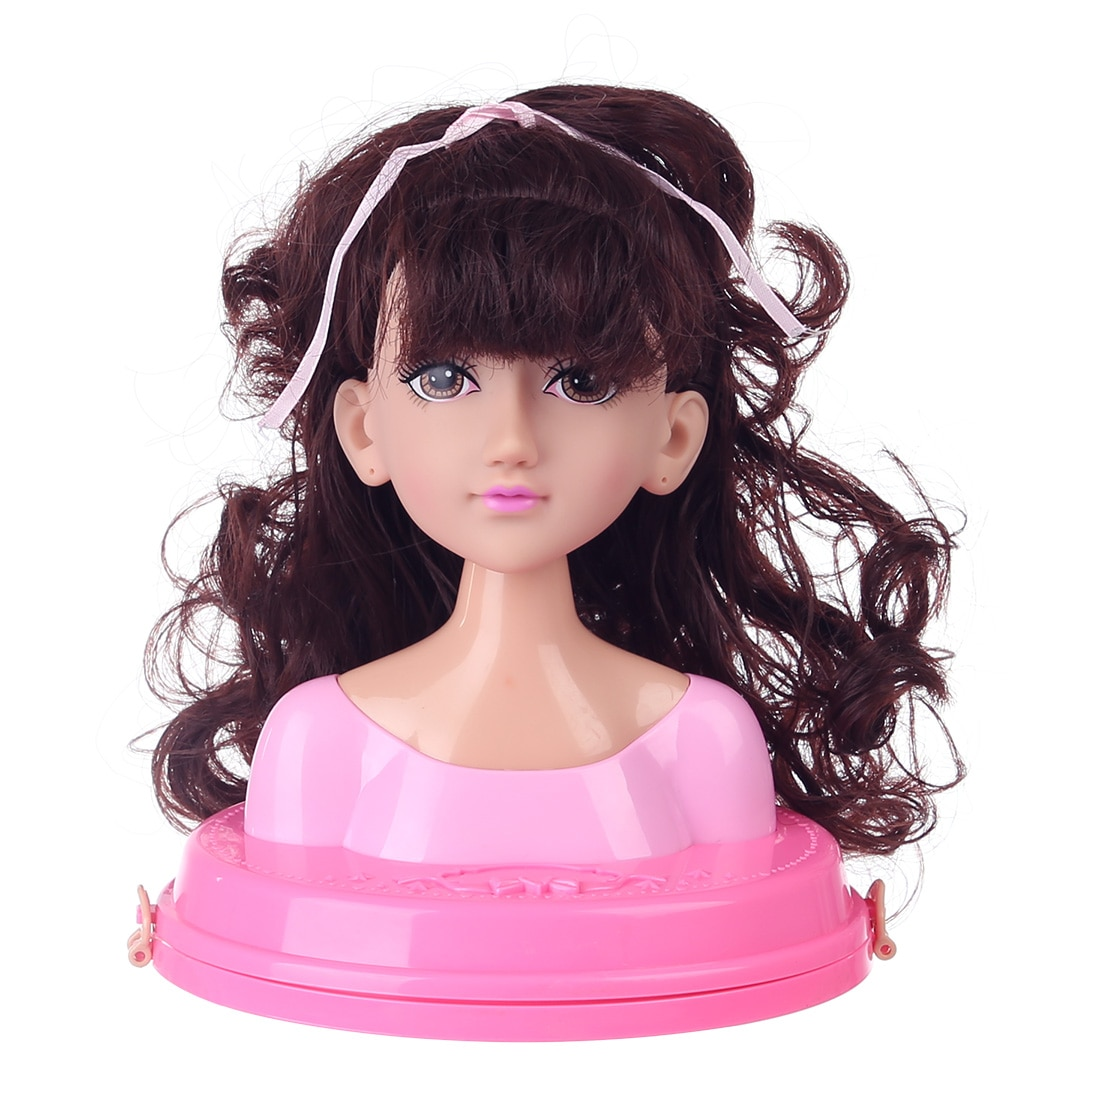 Children Doll Deluxe Styling Head Makeup Pretend Playset Hairstyle Toy Kids Make Up Toy Set For Kids Girls Birthday Gifts 2020